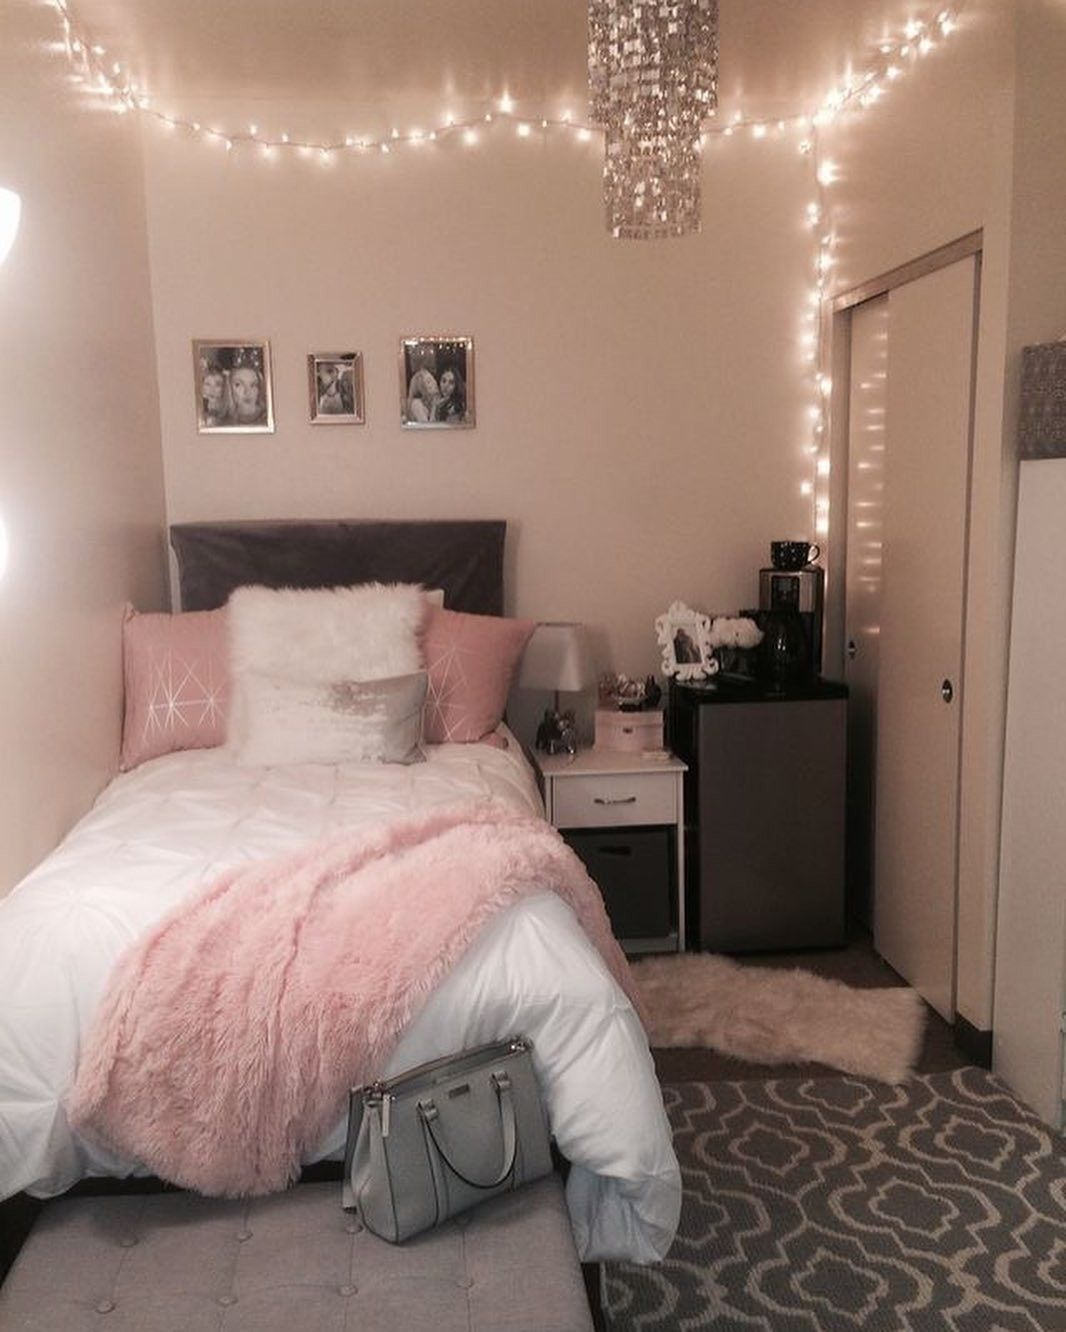 Pinterest Girly Girl Add Me For More Small Room Bedroom Woman Bedroom Girl Bedroom Decor